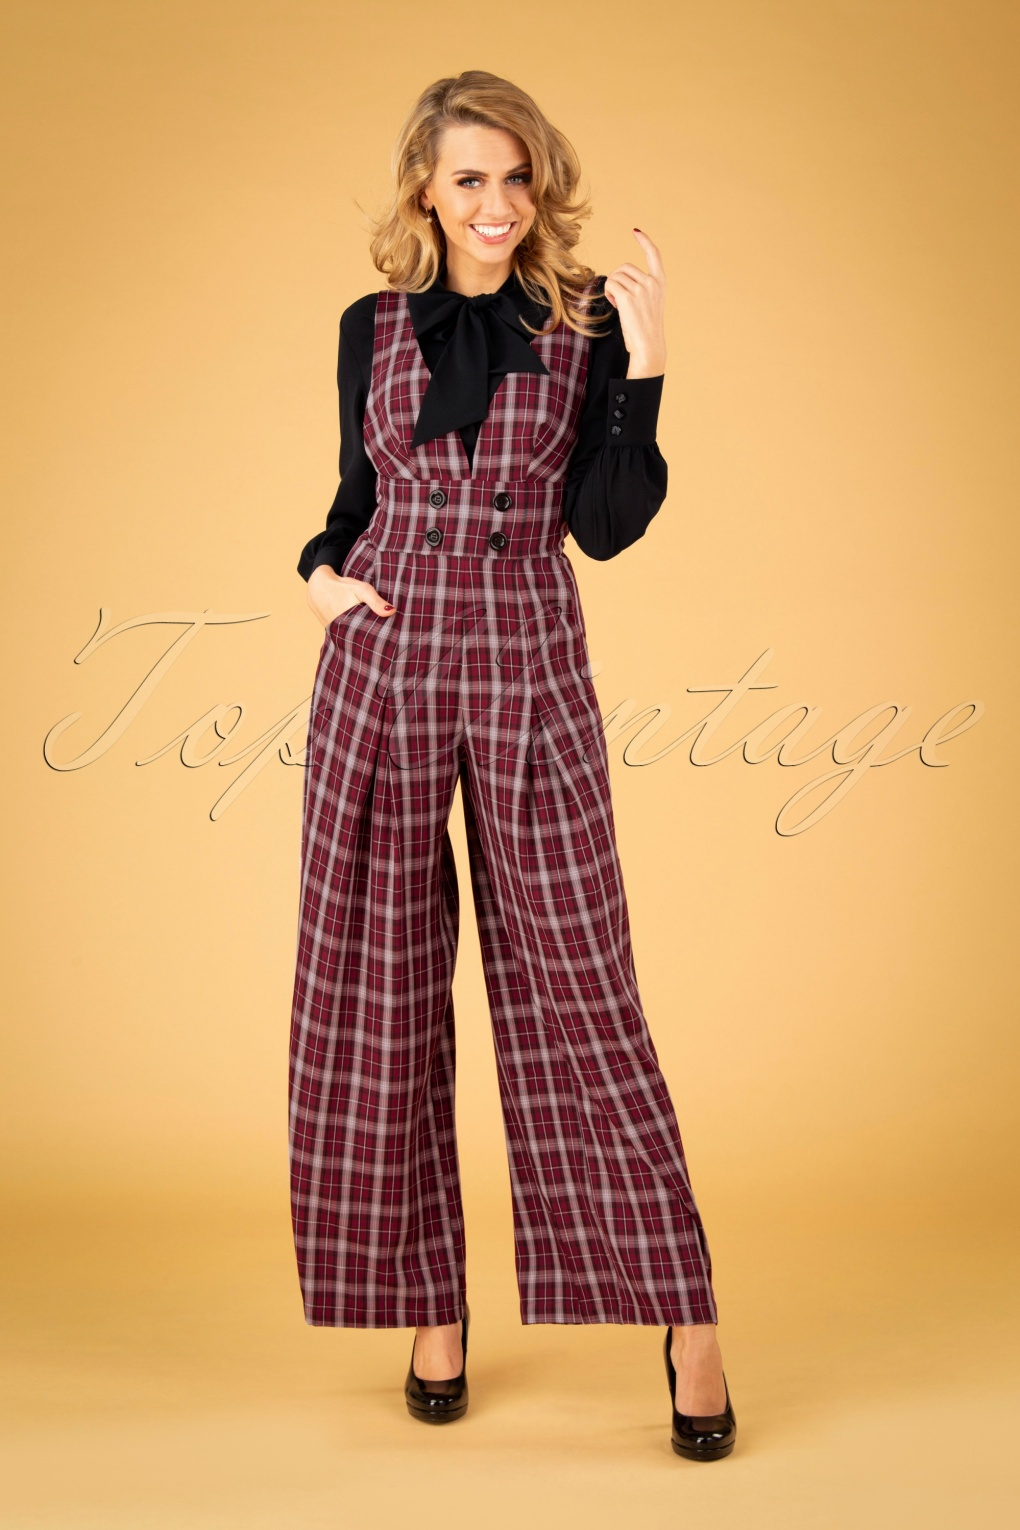 Vintage Overalls 1910s -1950s History & Shop Overalls 40s Rommana Wide Leg Jumpsuit in Burgundy £67.70 AT vintagedancer.com